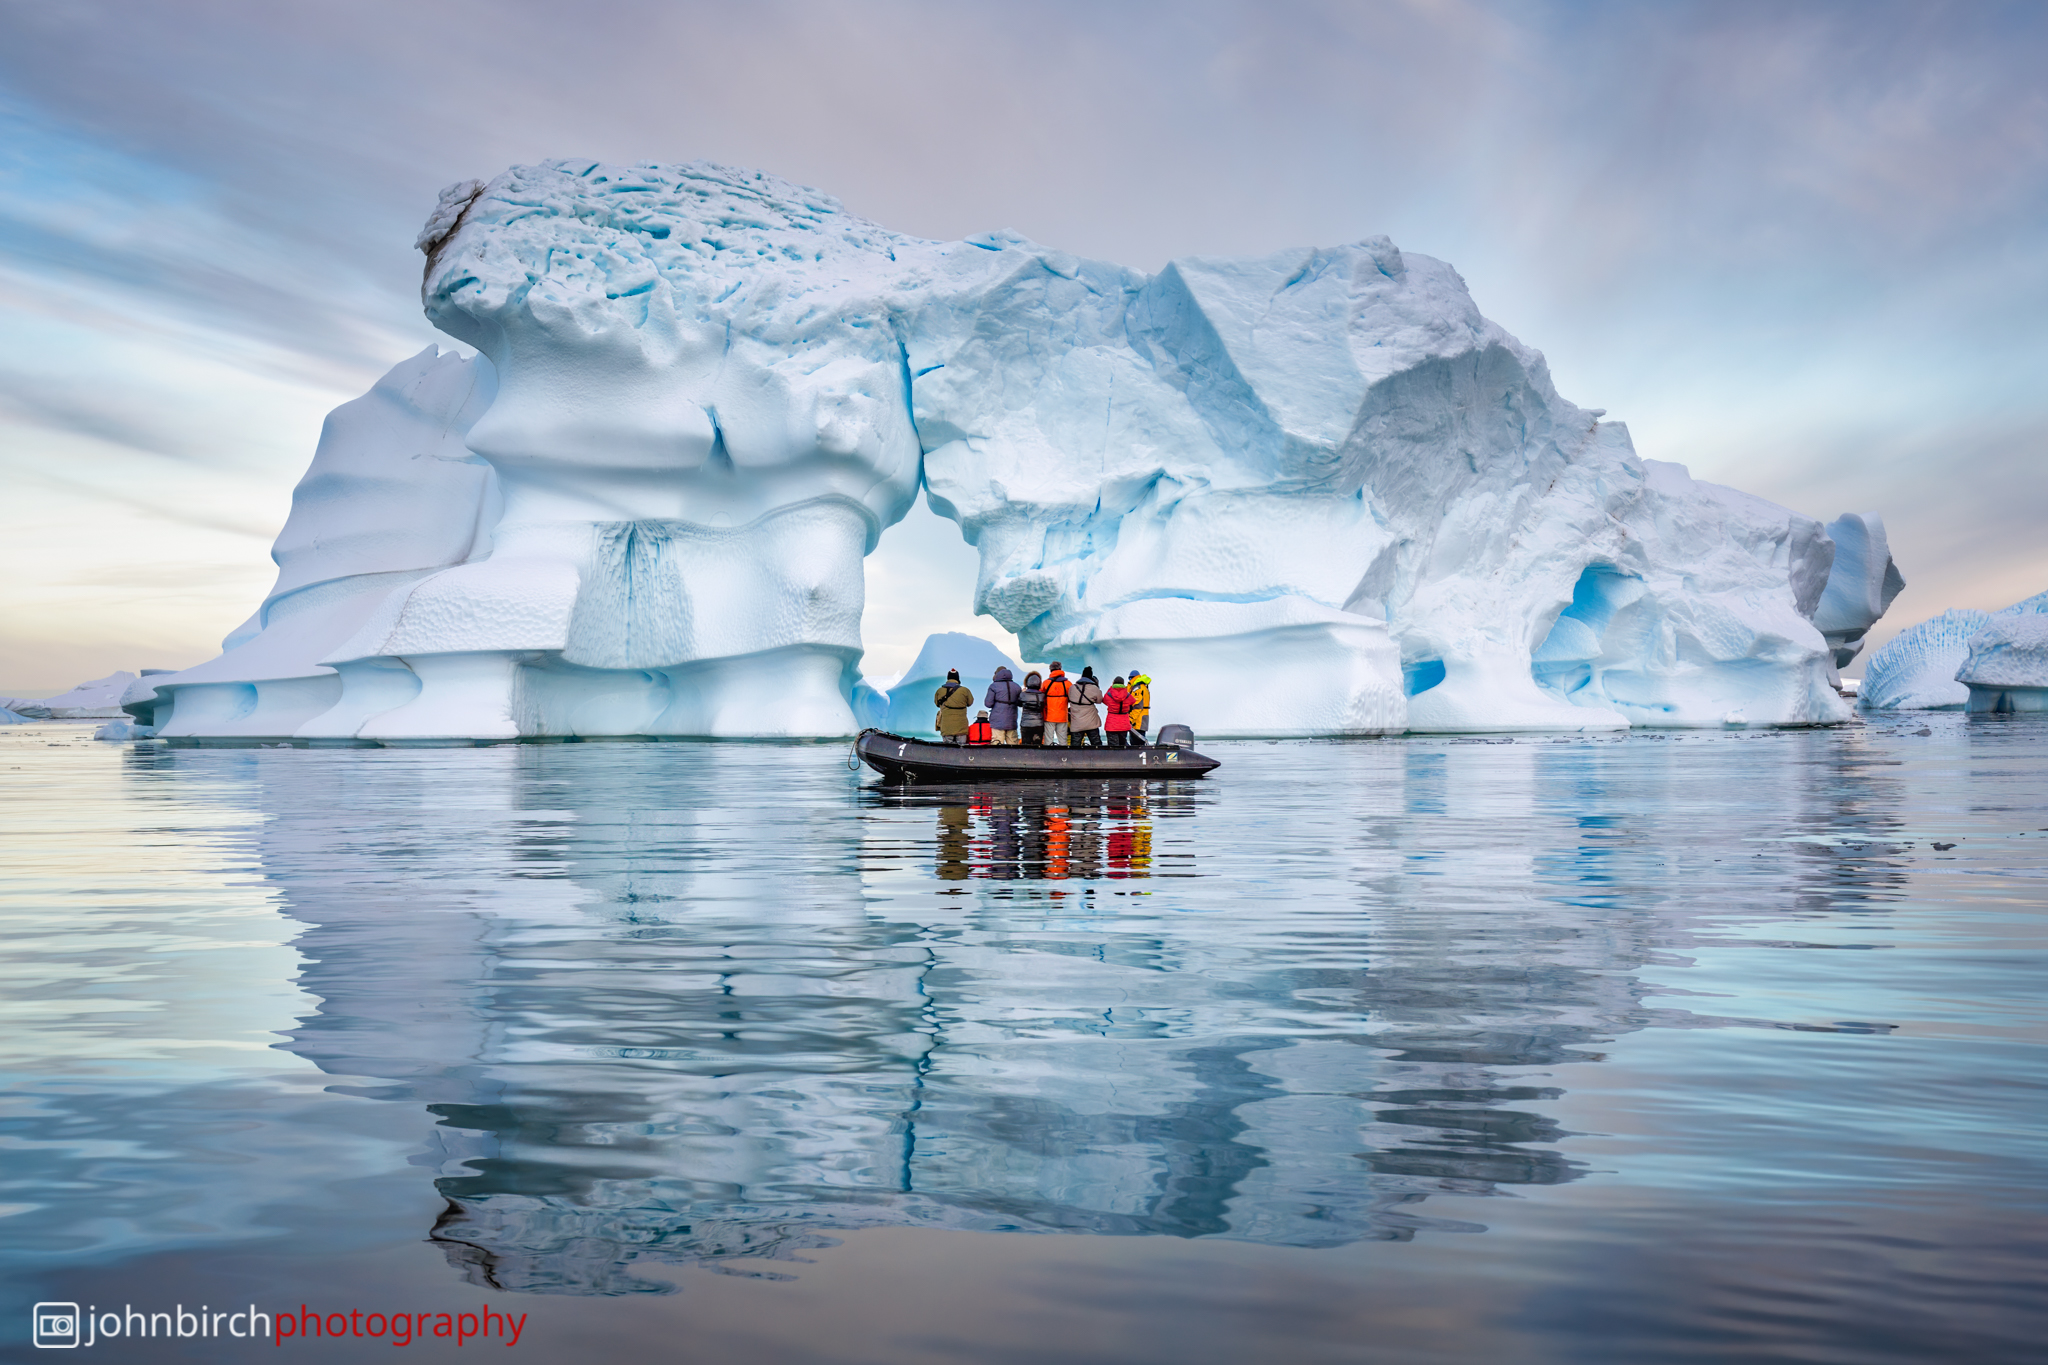 How to Photograph an Iceberg